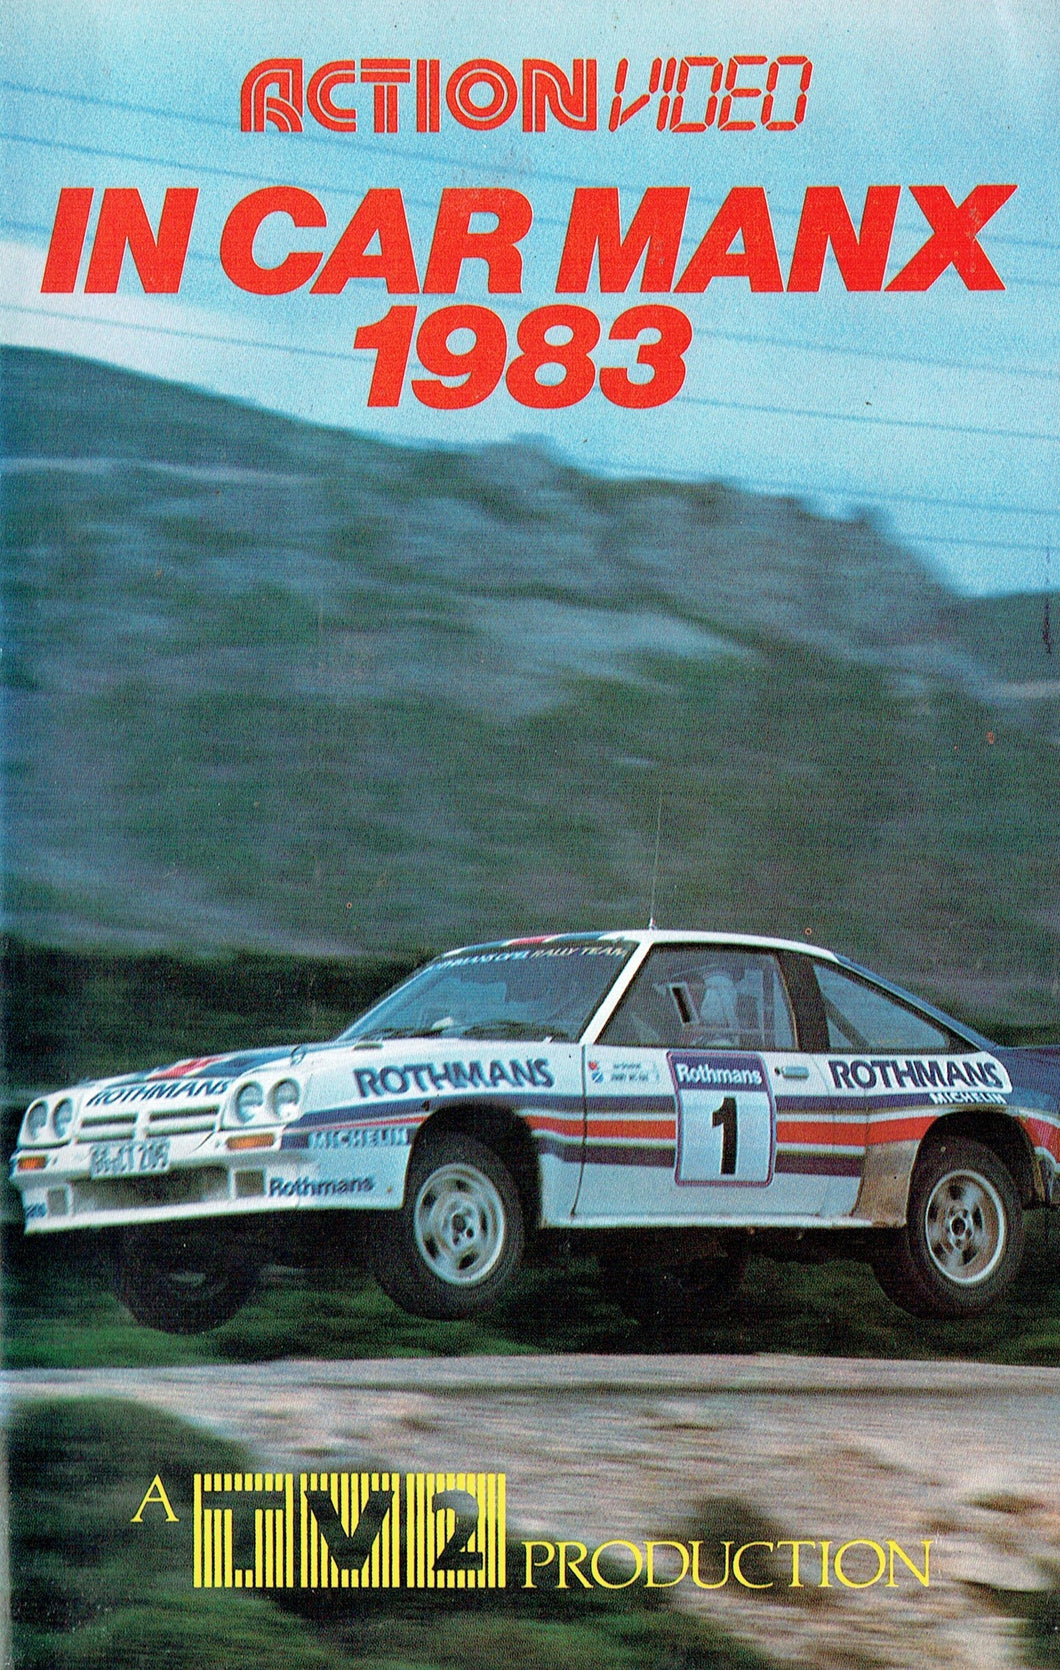 In Car Manx 1983 - Manx Rally - A TV2 Production [VHS]